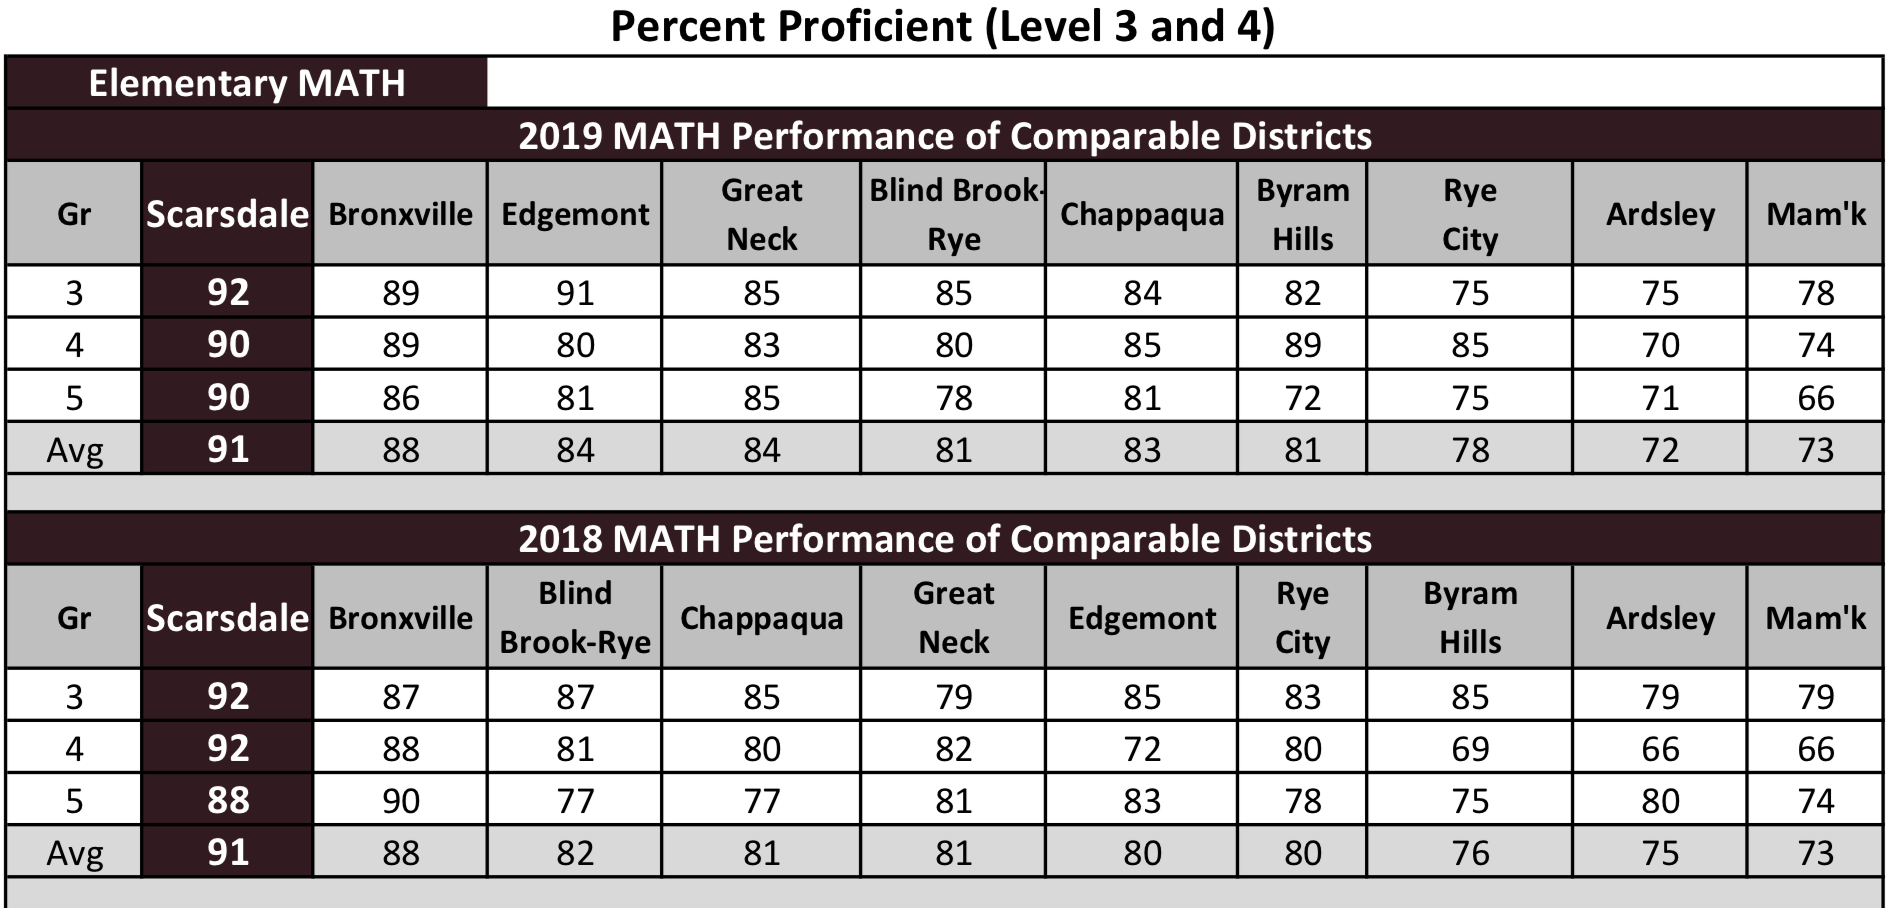 MathProficiencyComparableDistricts